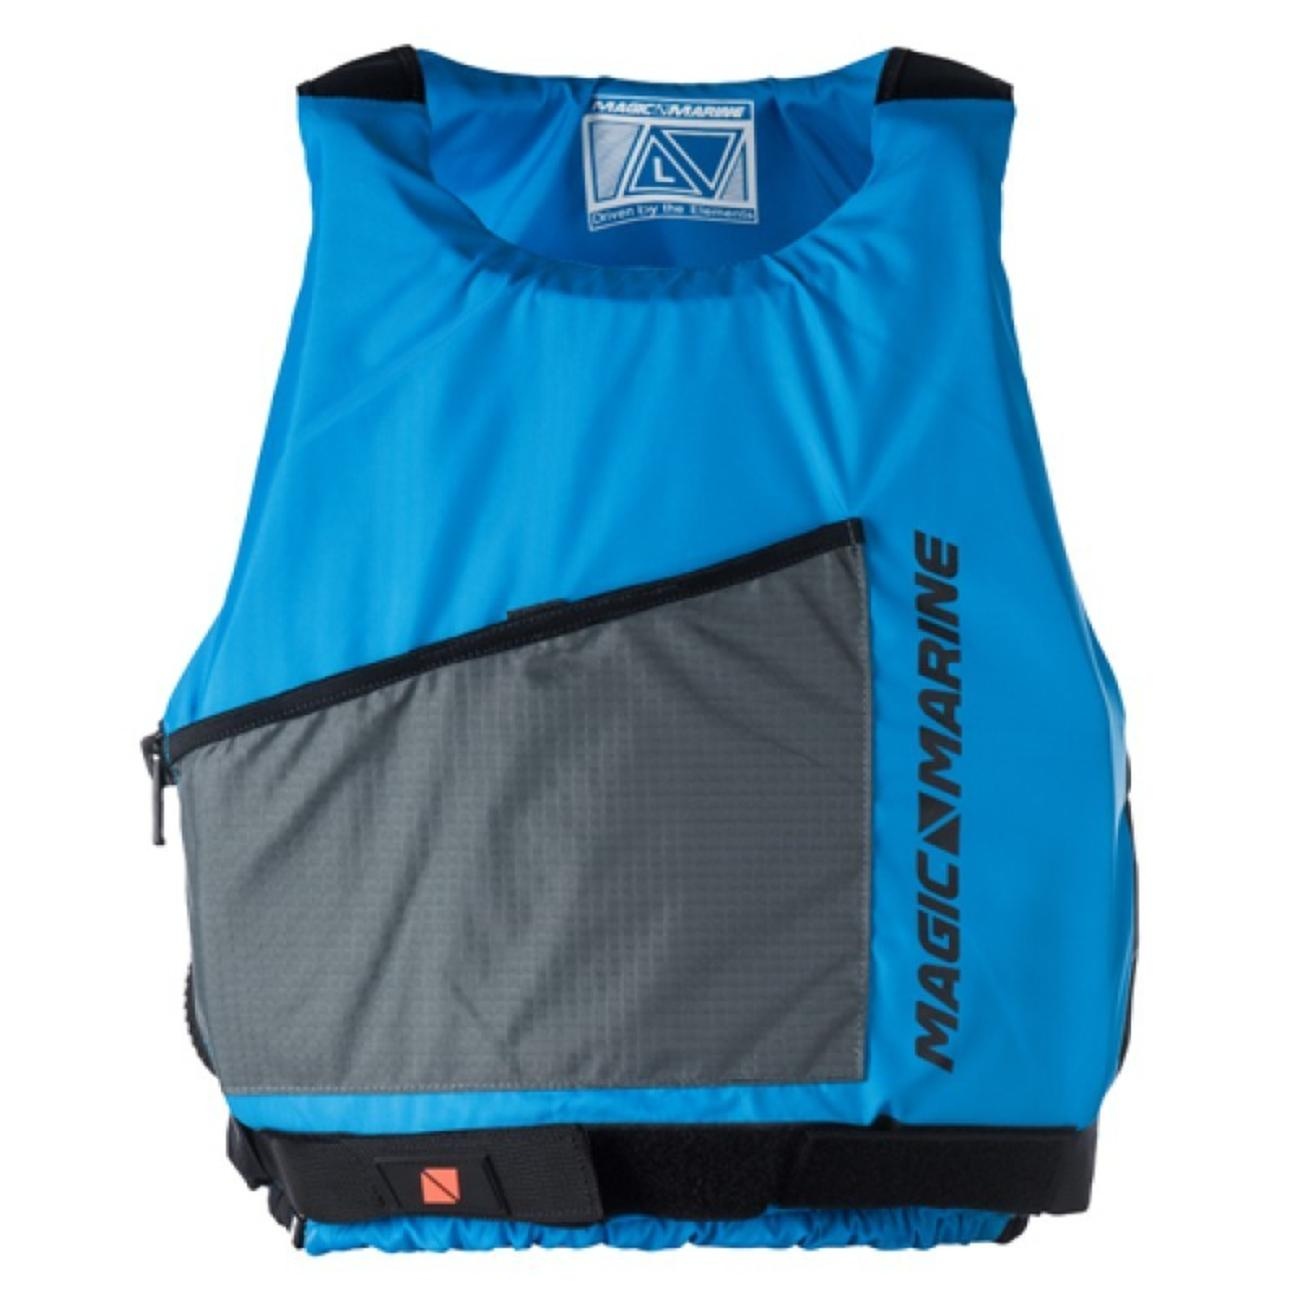 Match Buoyancy Aid Szip